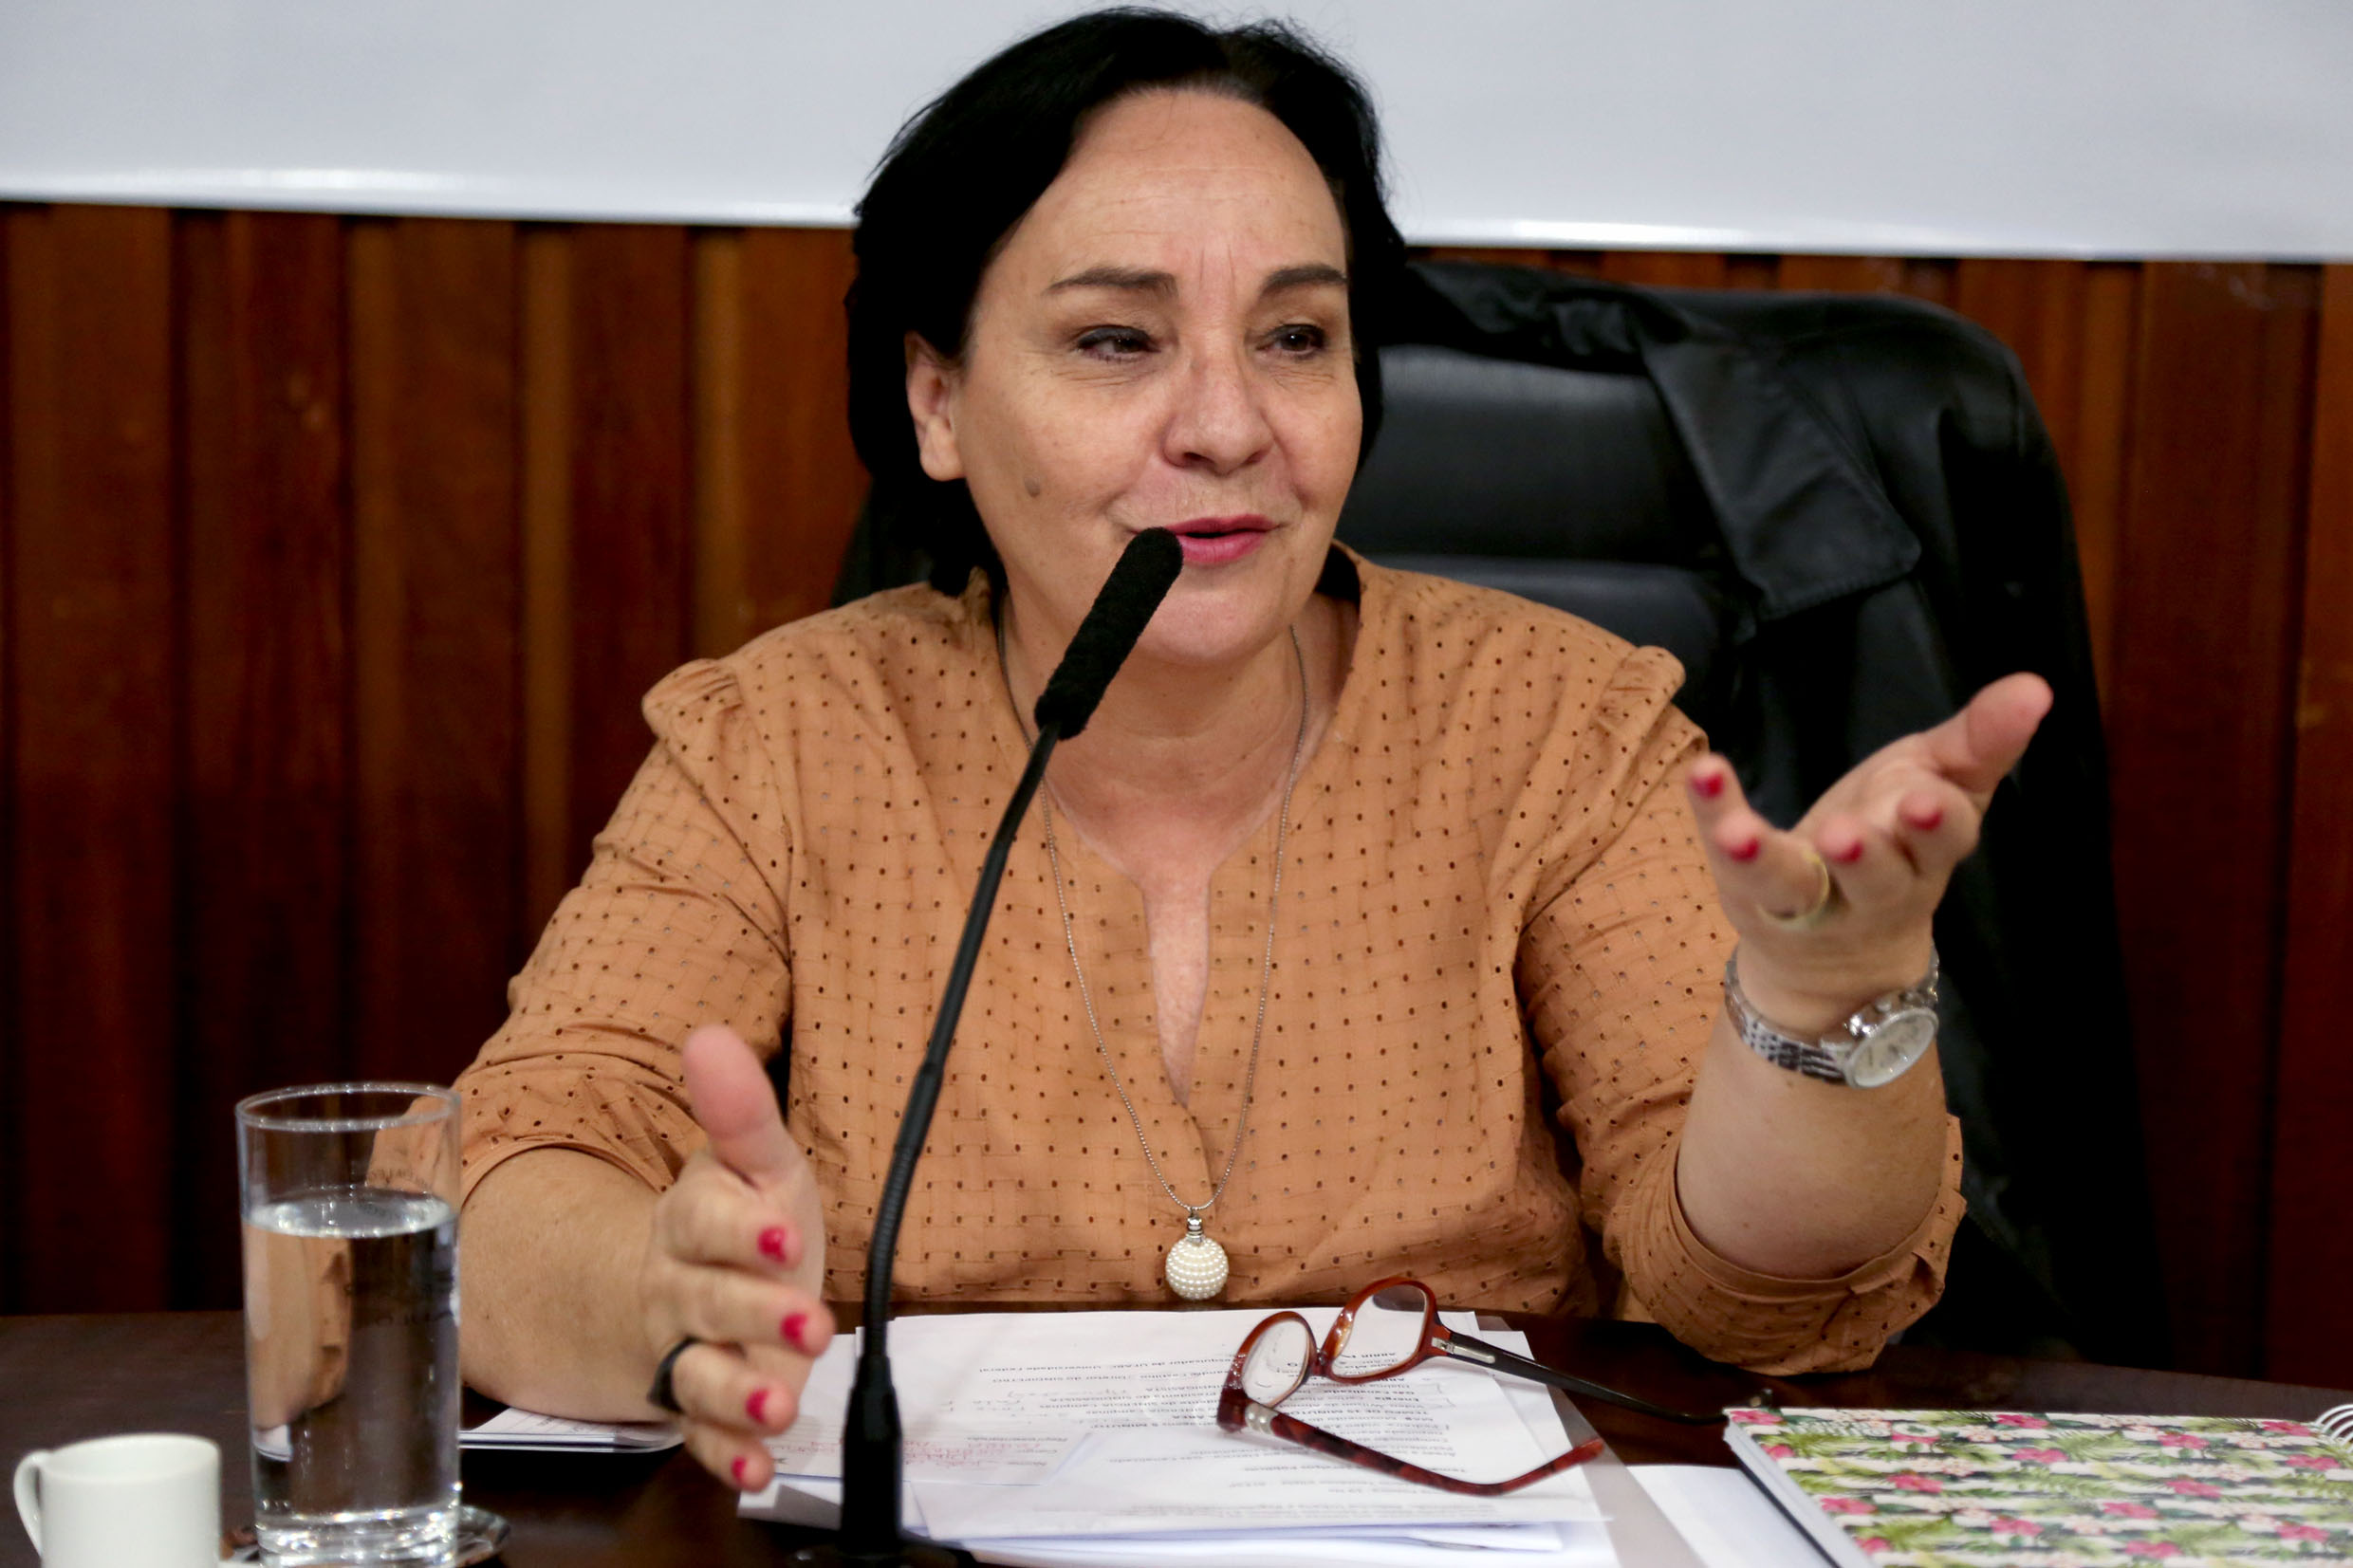 Márcia Lia<a style='float:right' href='https://www3.al.sp.gov.br/repositorio/noticia/N-12-2019/fg245051.jpg' target=_blank><img src='/_img/material-file-download-white.png' width='14px' alt='Clique para baixar a imagem'></a>